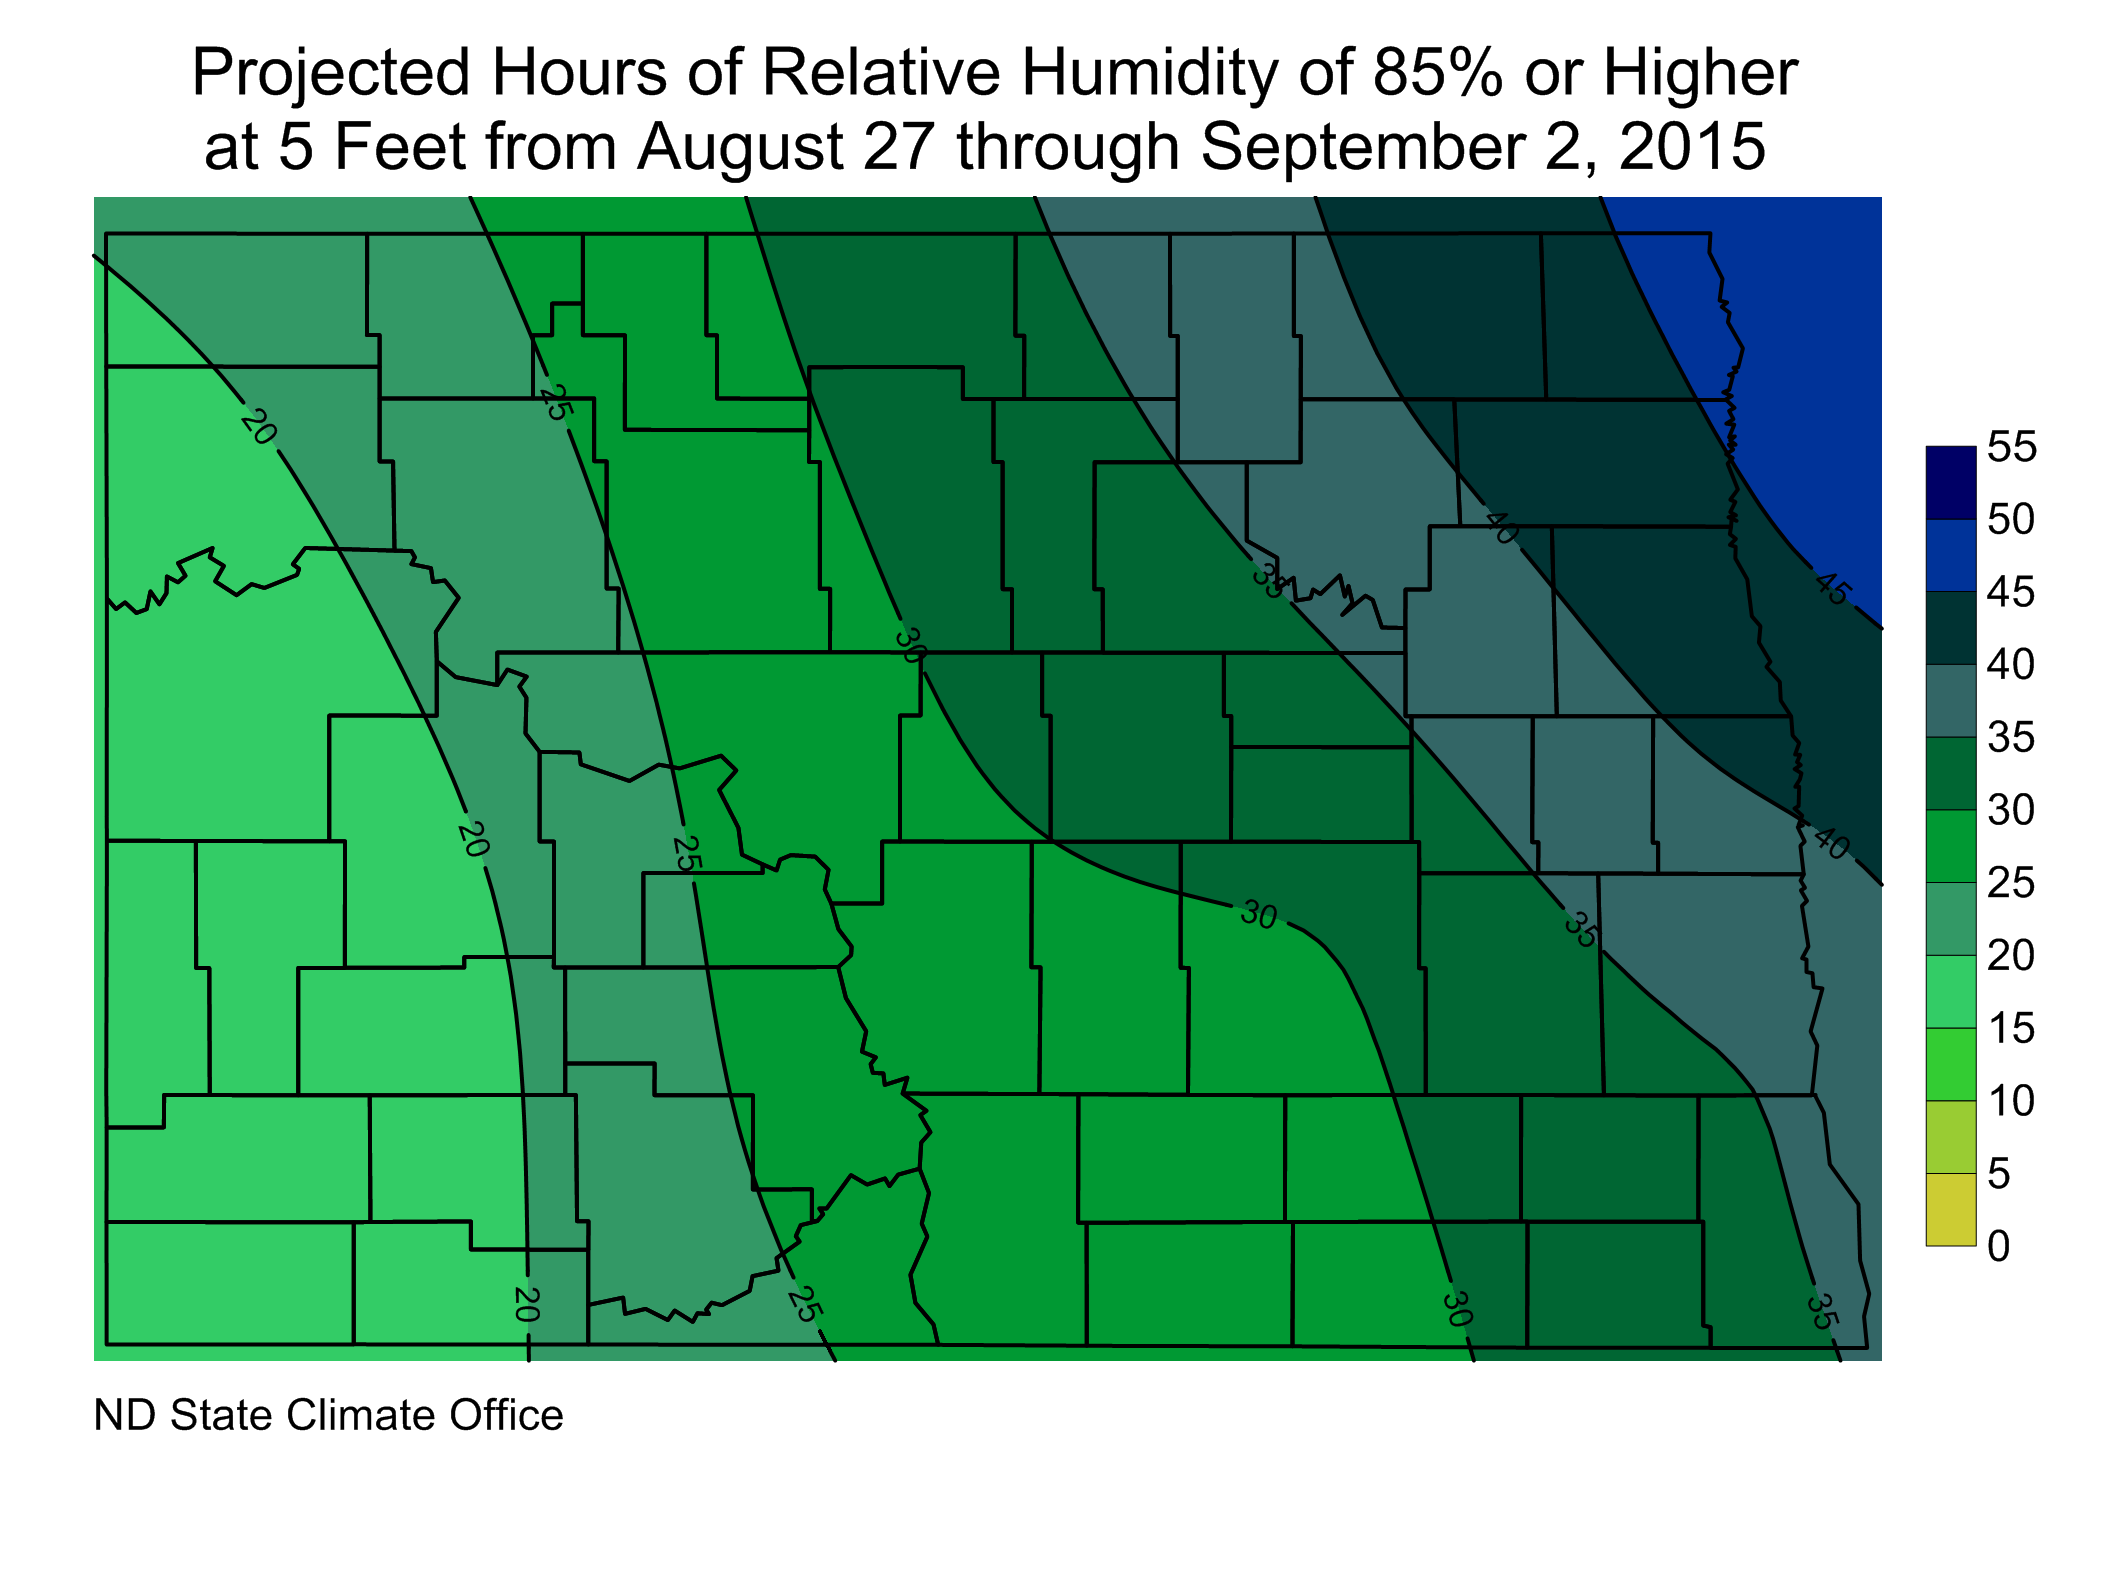 Figure 3. Projected Hours at/above 85% Relative Humidity from August 27 through September 2, 2015